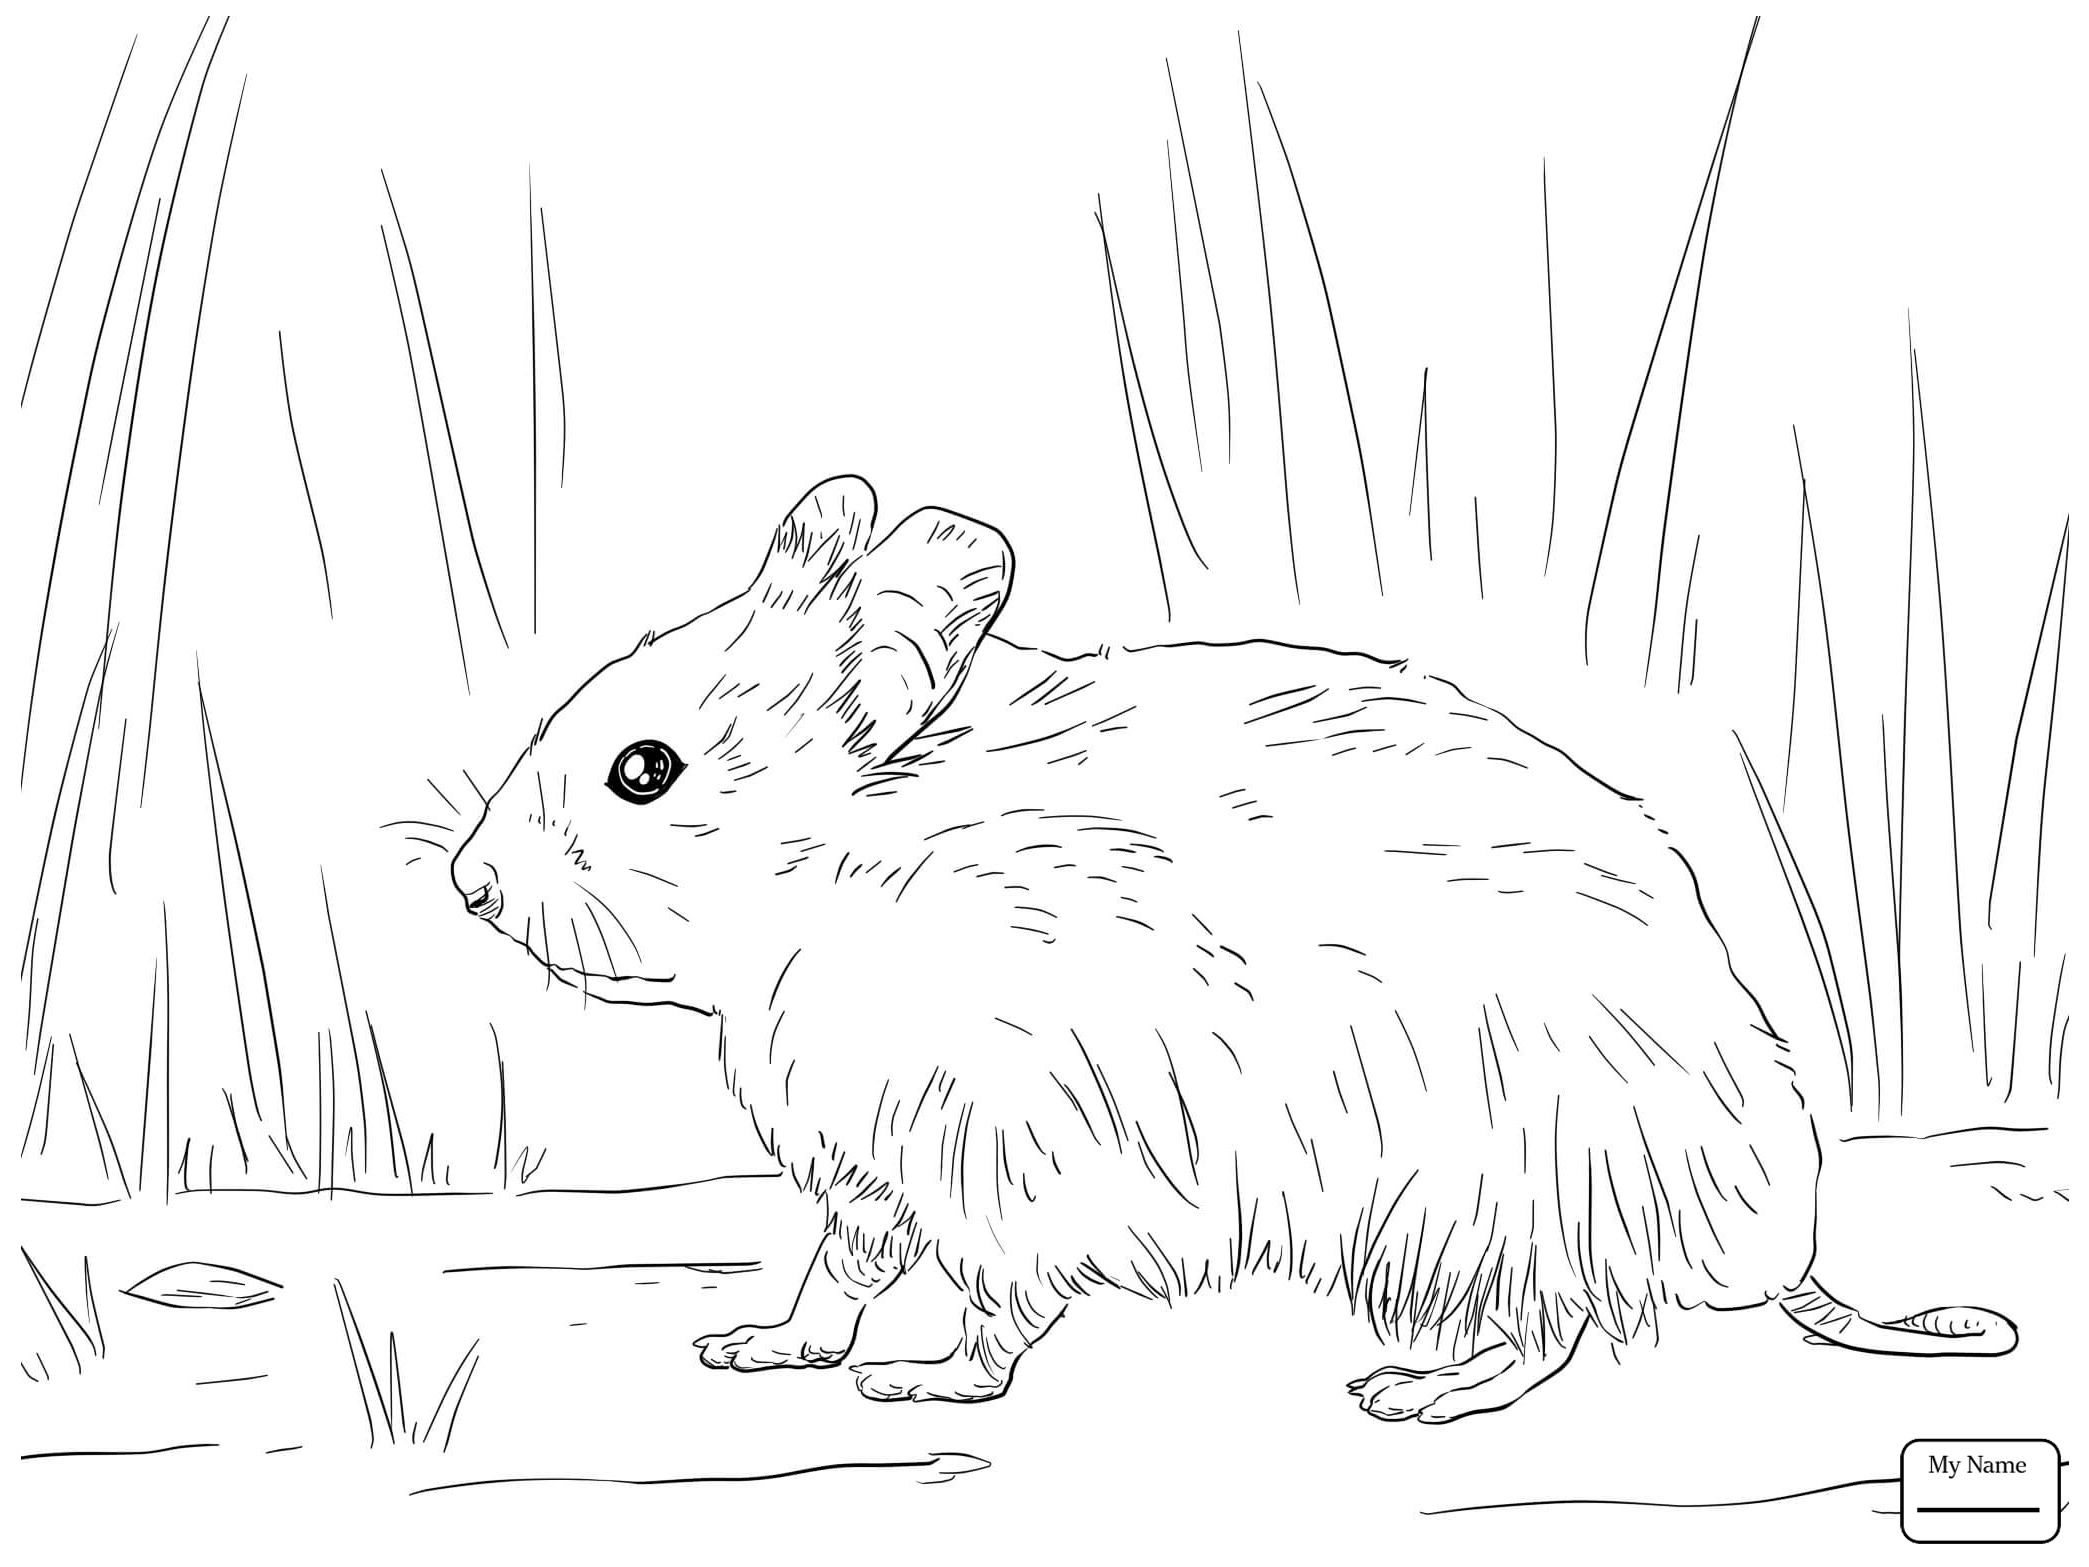 how to draw a dwarf hamster dwarf hamster drawing at paintingvalleycom explore draw dwarf a hamster how to